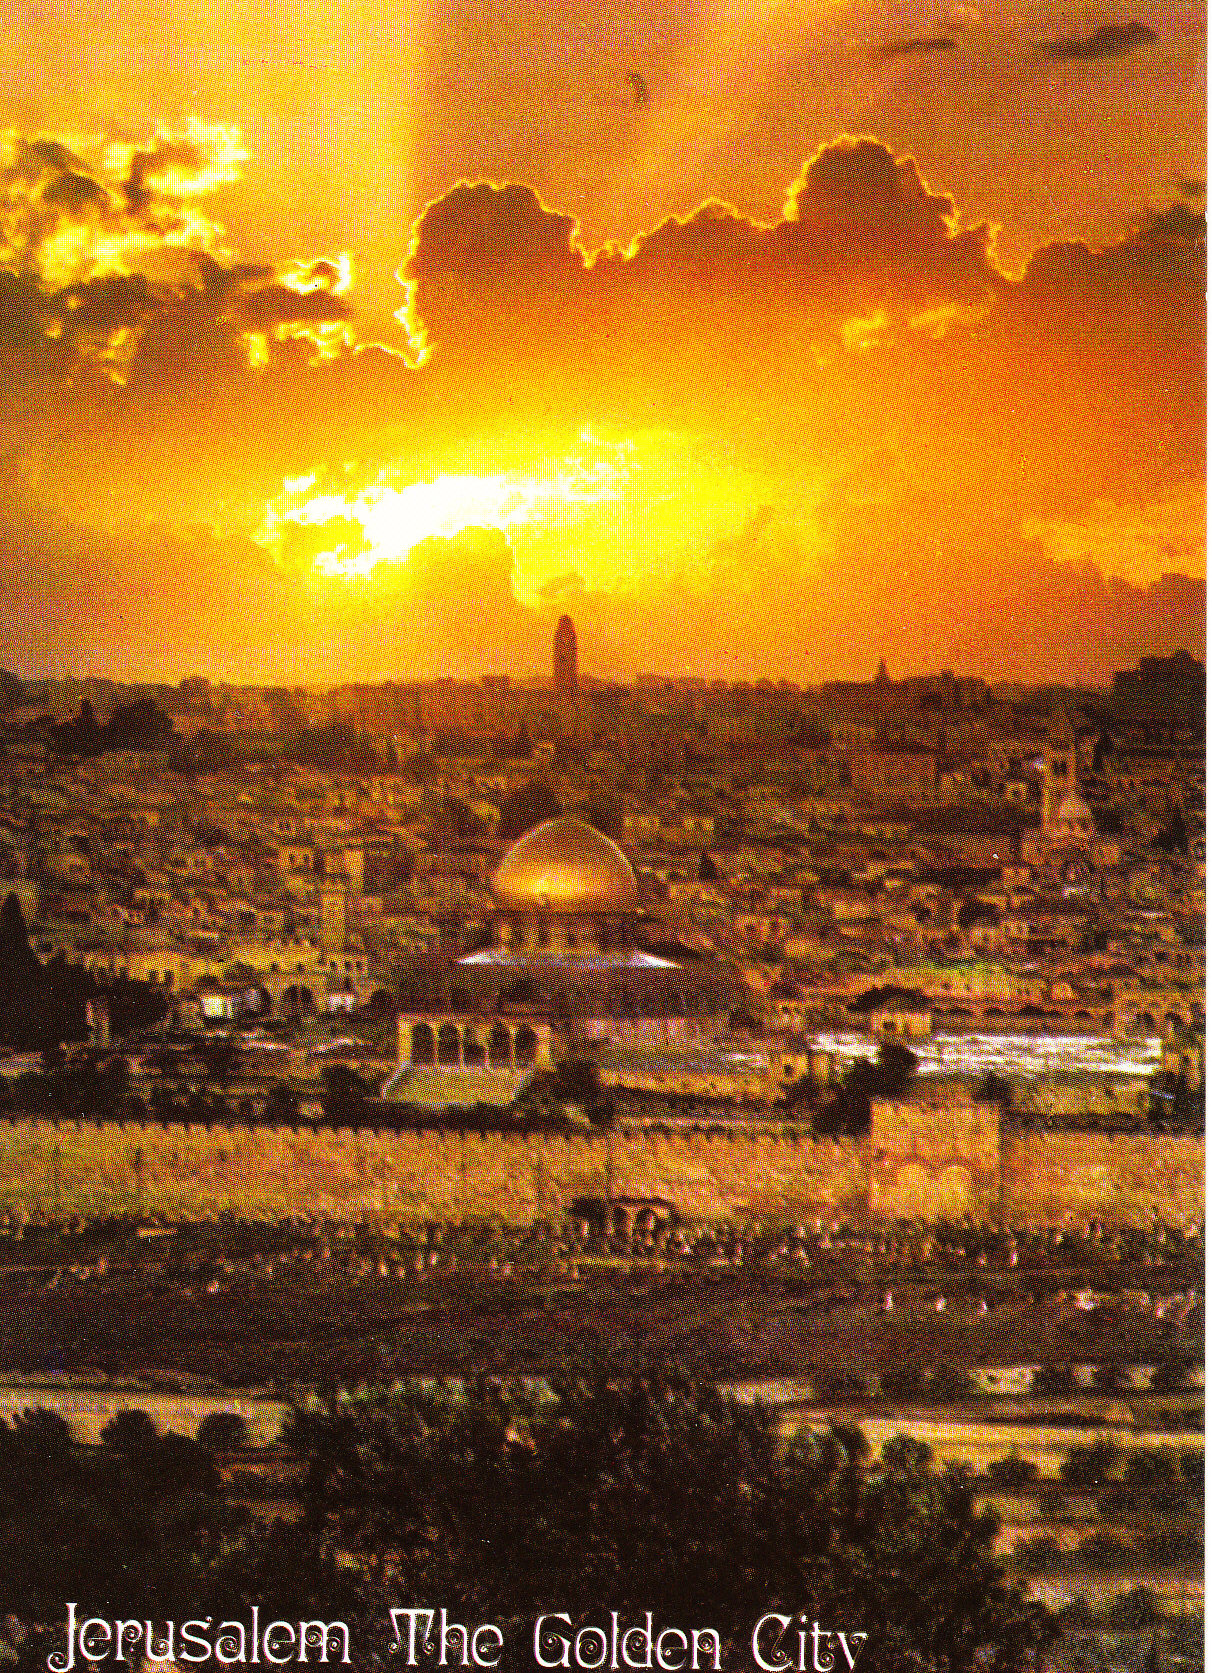 jerusalem the holy city of god  jerusalem, the city of the three faiths jerusalem founded in between 4500-3500 bce has become a center of the three major monotheistic faiths in the world.